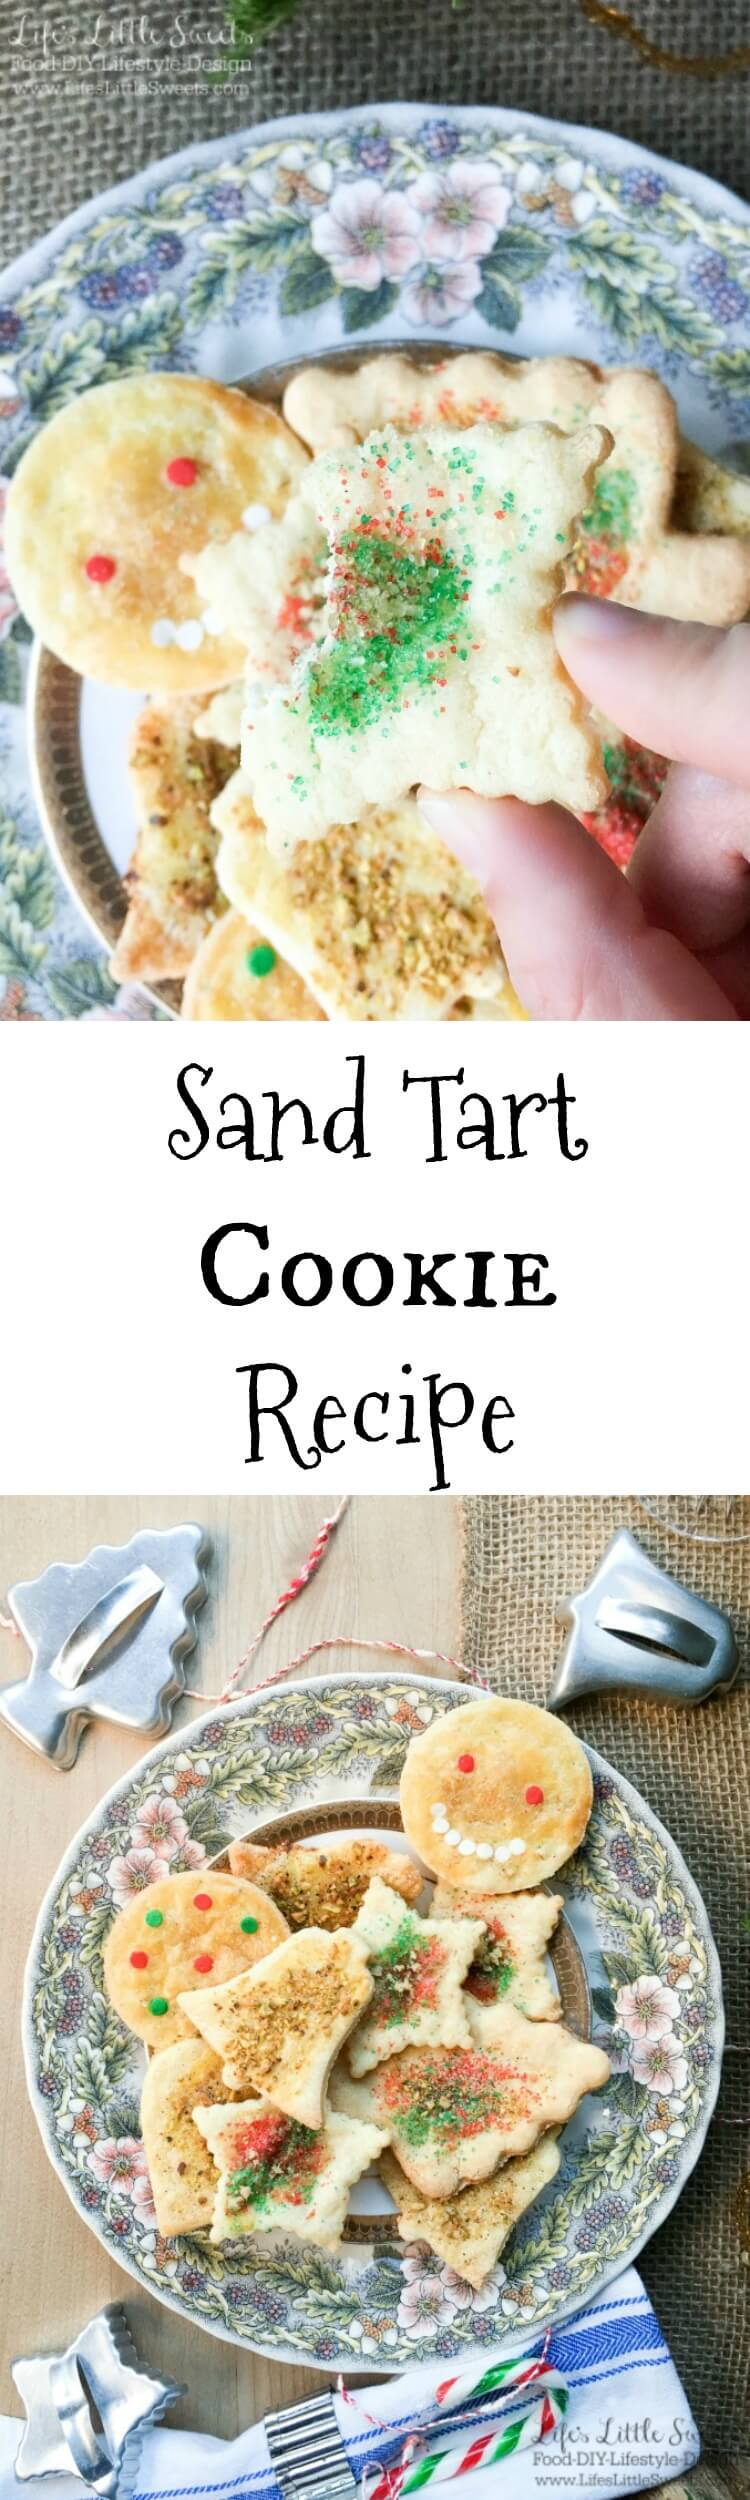 This Sand Tart Cookie Recipe is our family recipe perfect for the Christmas & Holiday season making a big batch of cookies. These cookies are easy to customize to your tastes with various toppings and make a fun activity for everyone involved. Check out our family home VIDEO of our cookie making session. #sandtart #recipe #homemade #cookies #cookie #sugarcookie #Christmas #sprinkles